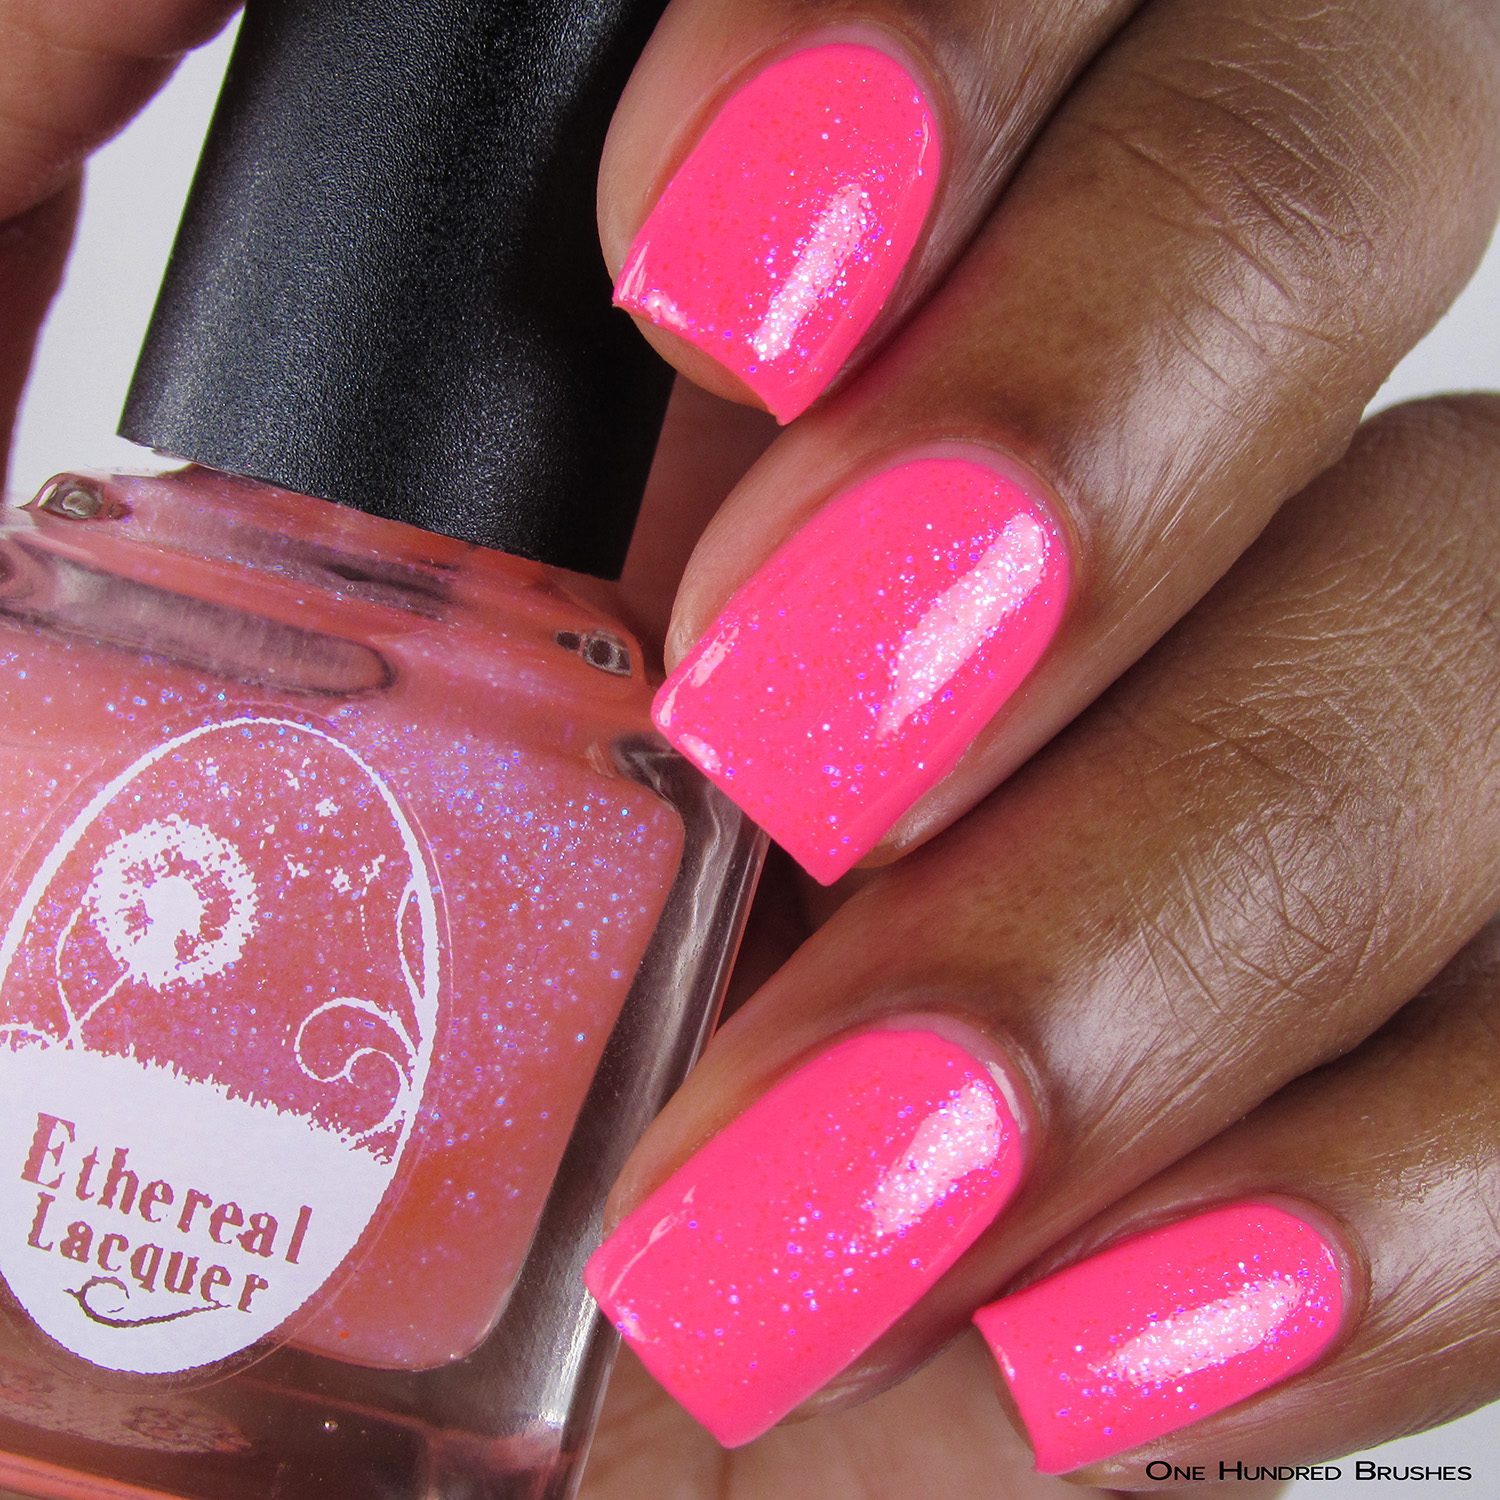 Eat Me, Drink Me - Bottle Front over Neon Pink - Ethereal Lacquer - July HHC